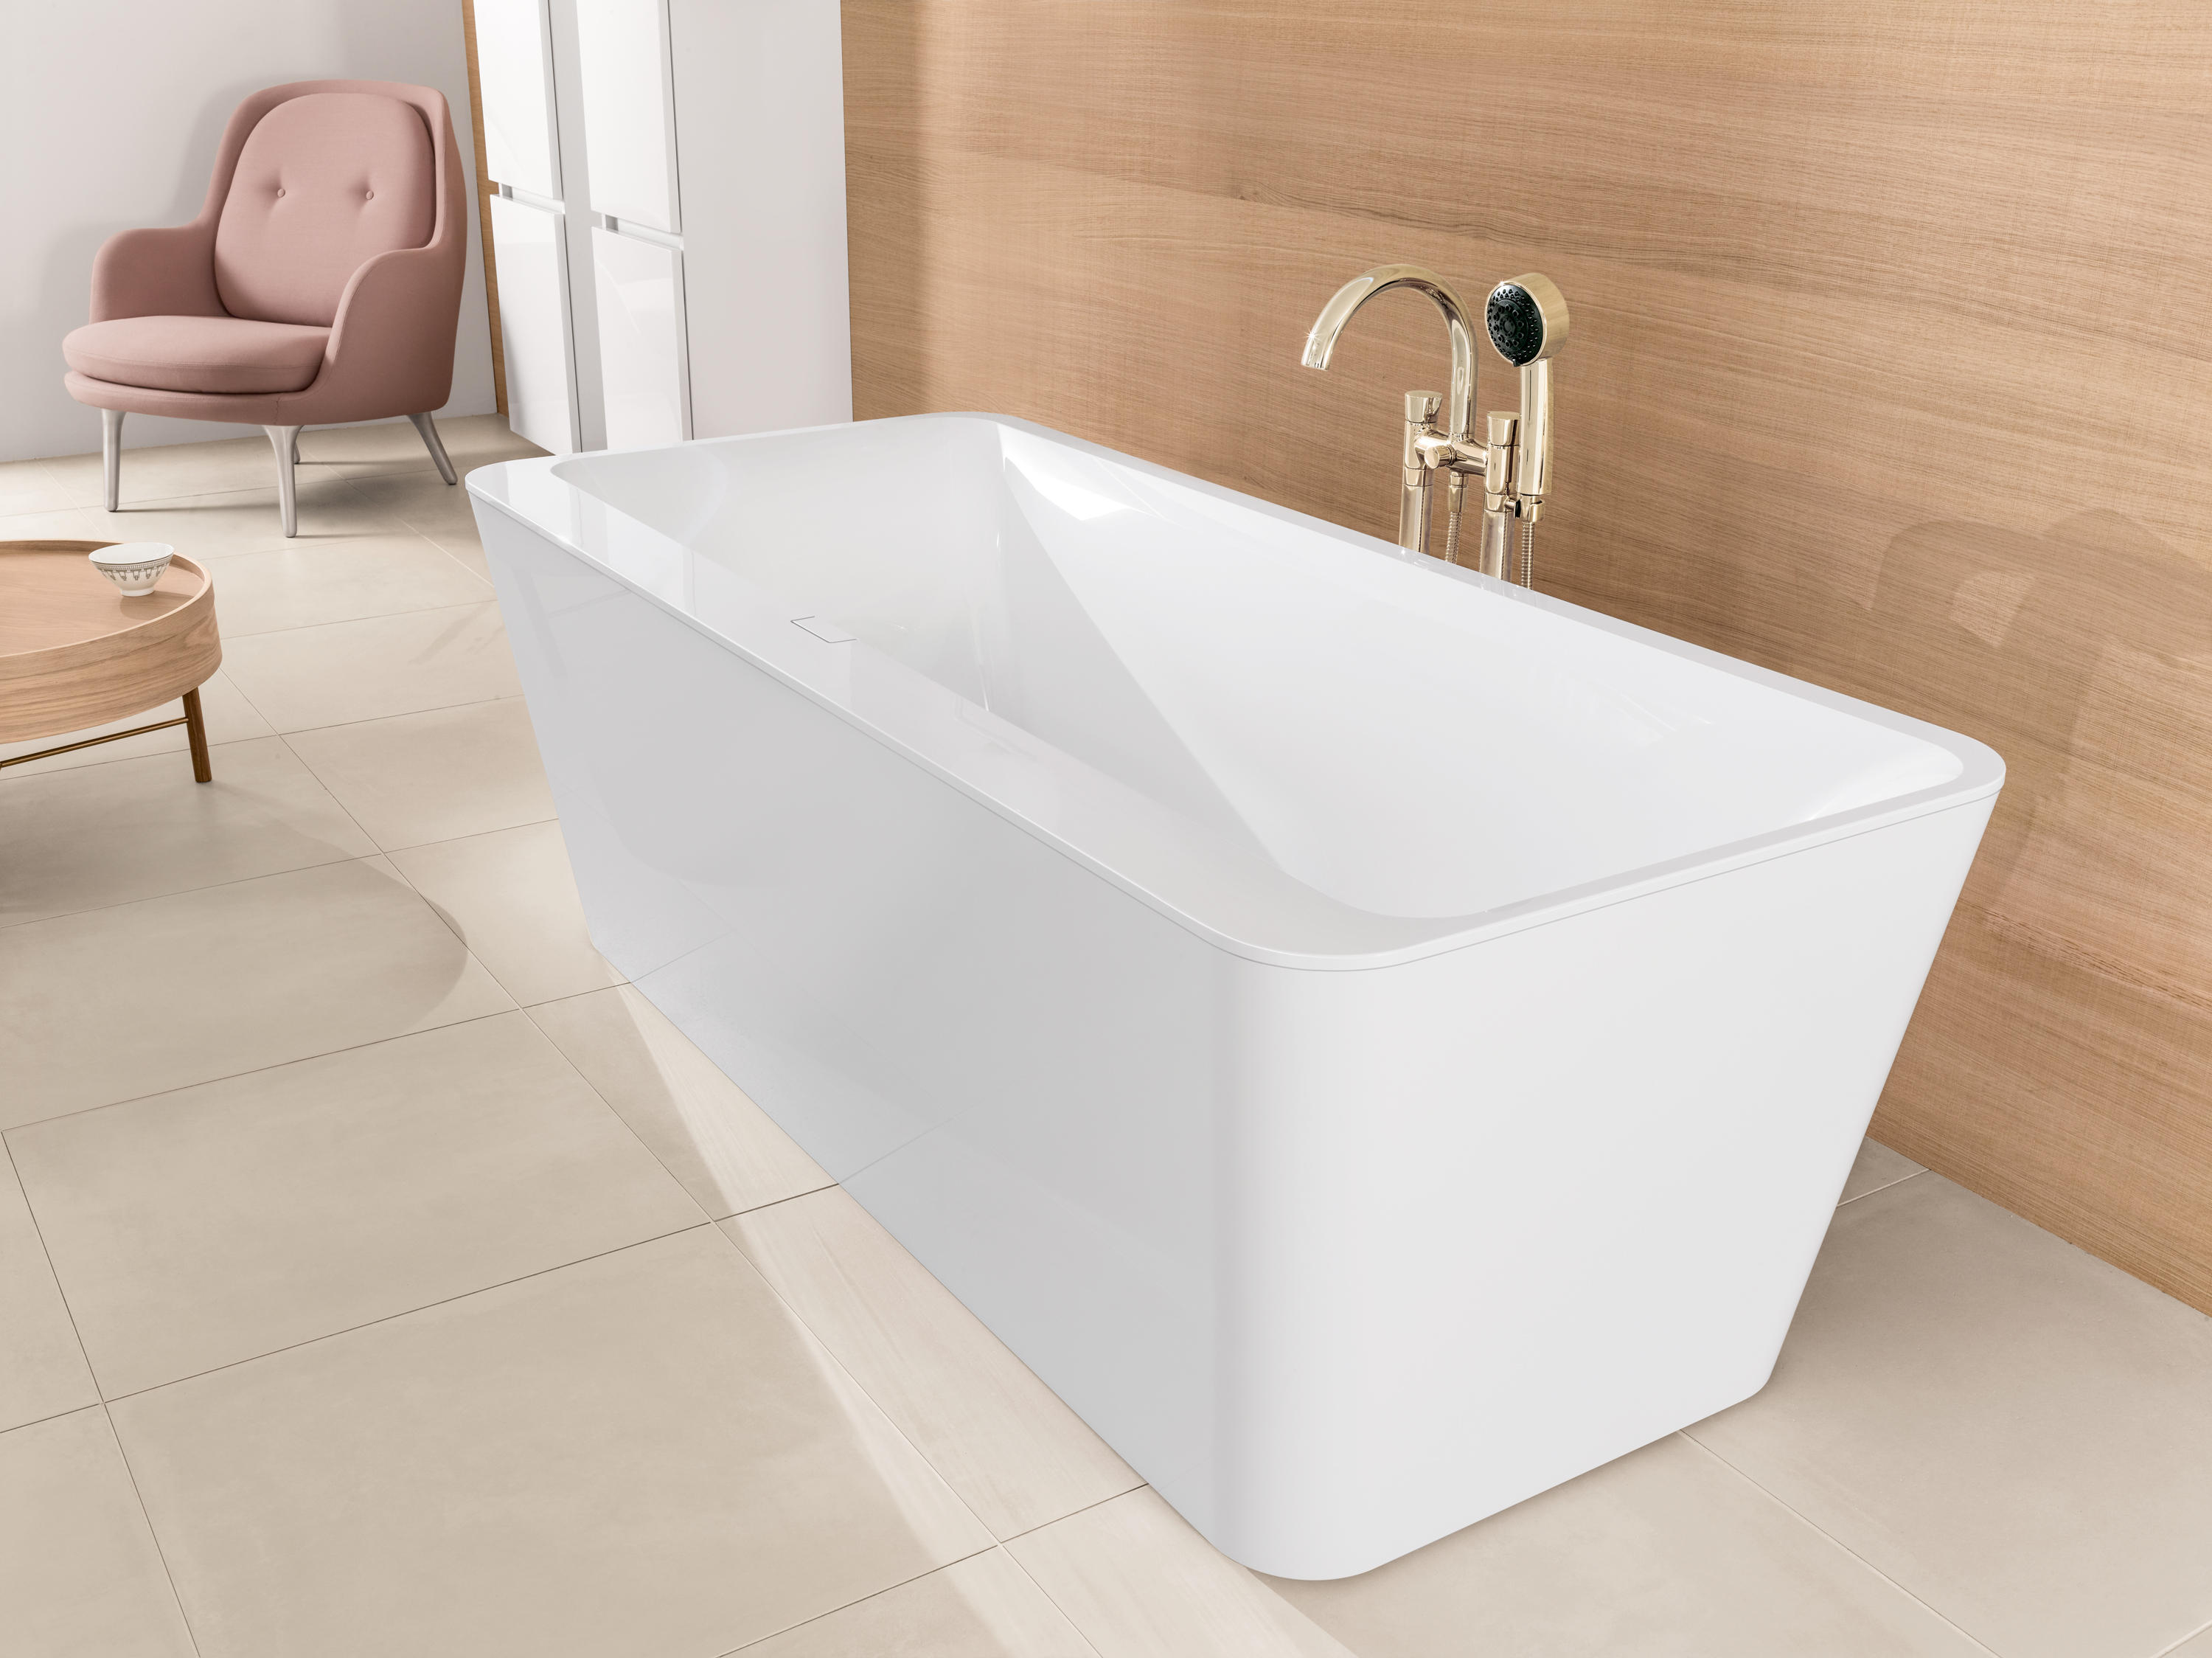 squaro edge 12 bath built in bathtubs from villeroy boch architonic. Black Bedroom Furniture Sets. Home Design Ideas